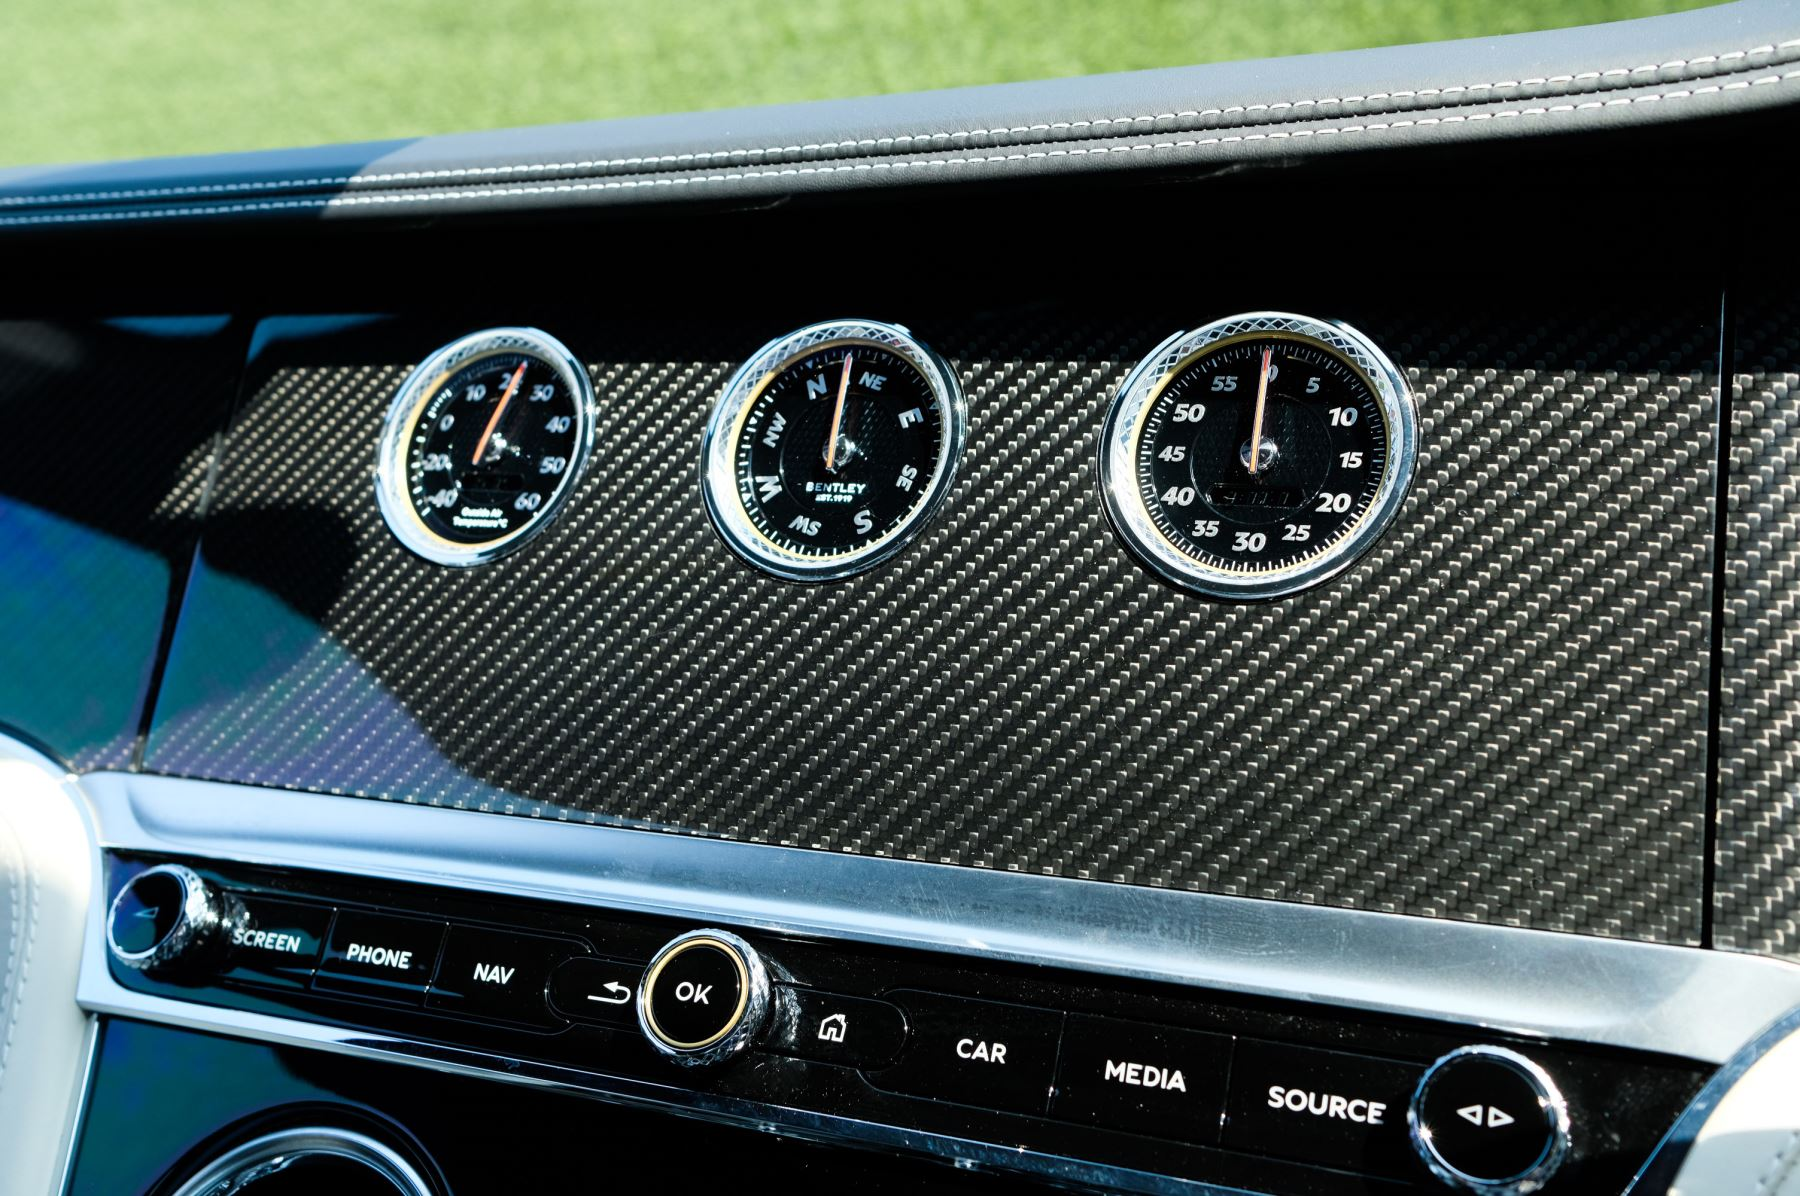 Bentley Continental GTC 4.0 V8 - Mulliner Driving Specification and Blackline Specification with 22 Inch Alloys image 22